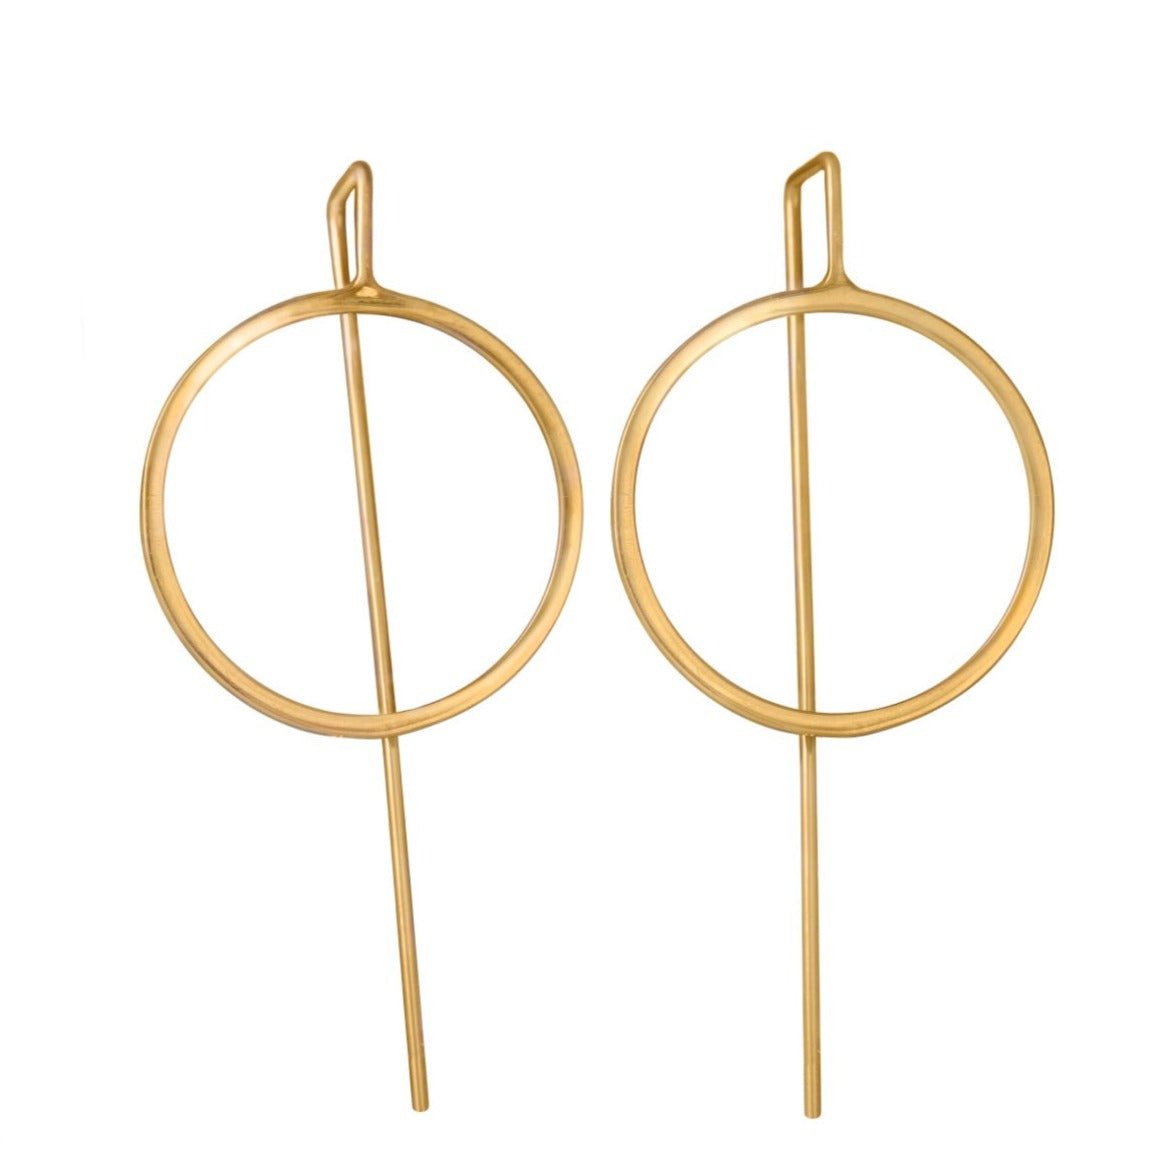 Gold Plated Sterling Silver Hollow Circle Earrings with a Long Straight Back